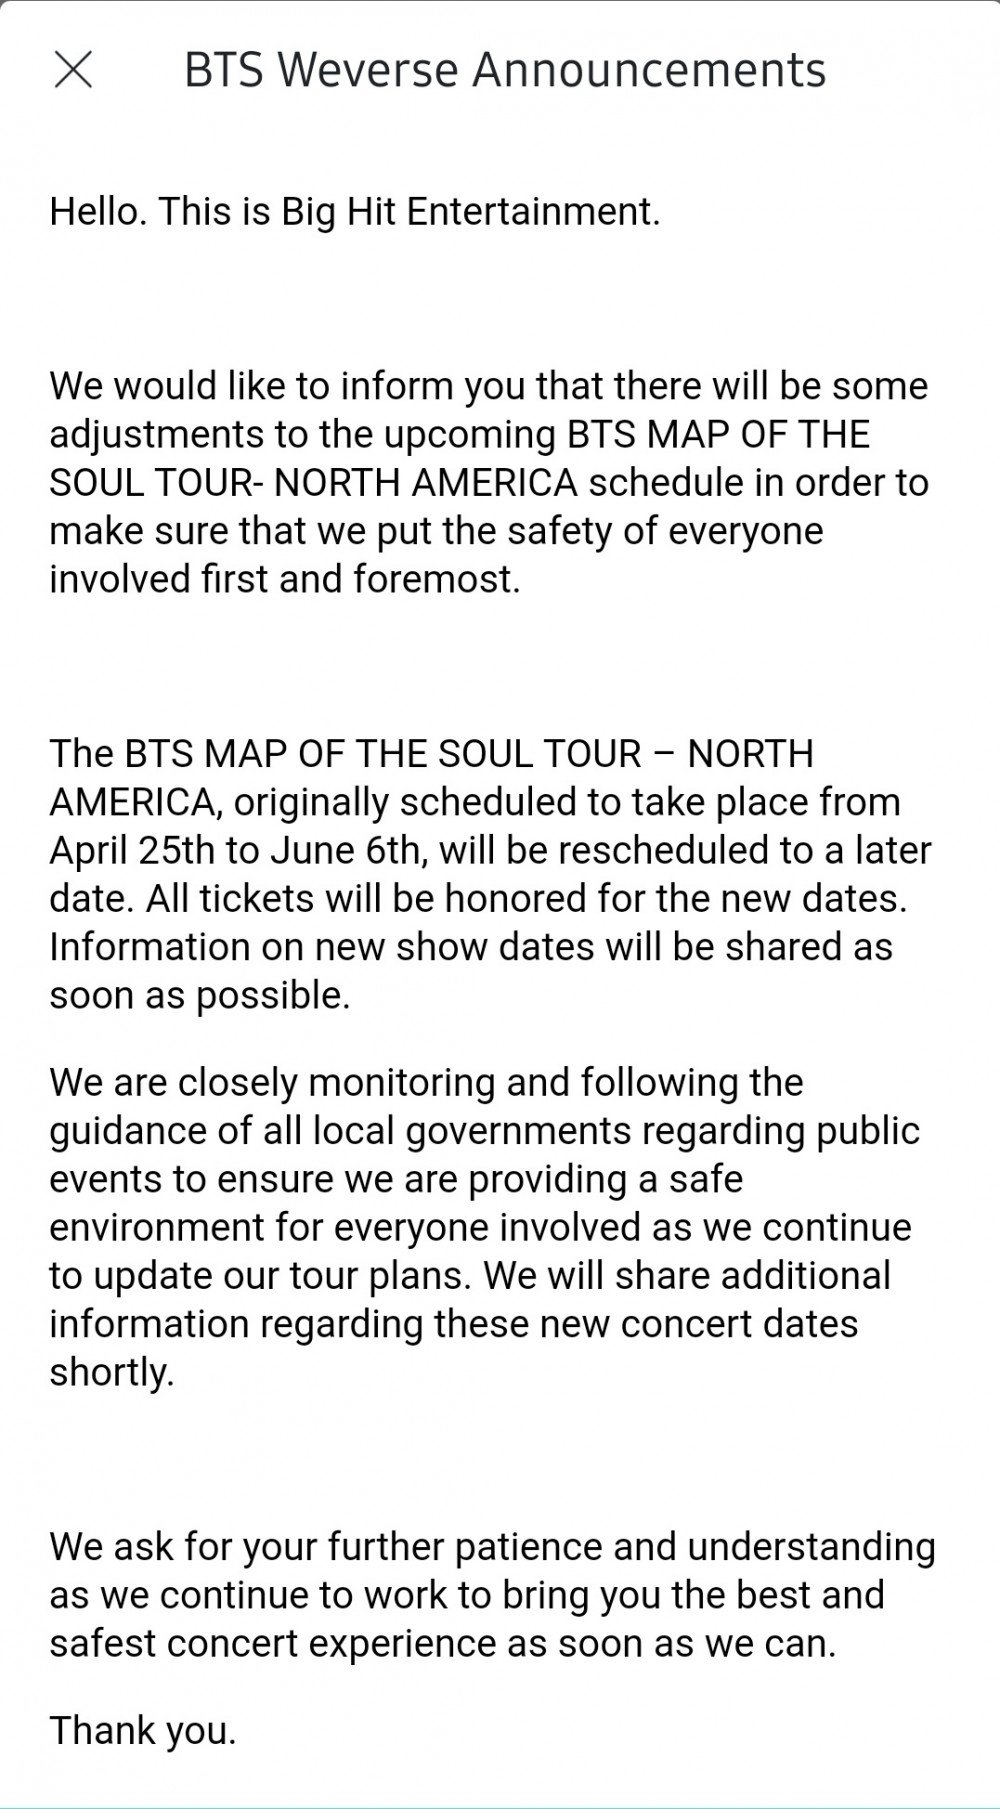 Big Hit Entertainment Announces Postponement Of Bts S Map Of The Soul Tour In North America Allkpop